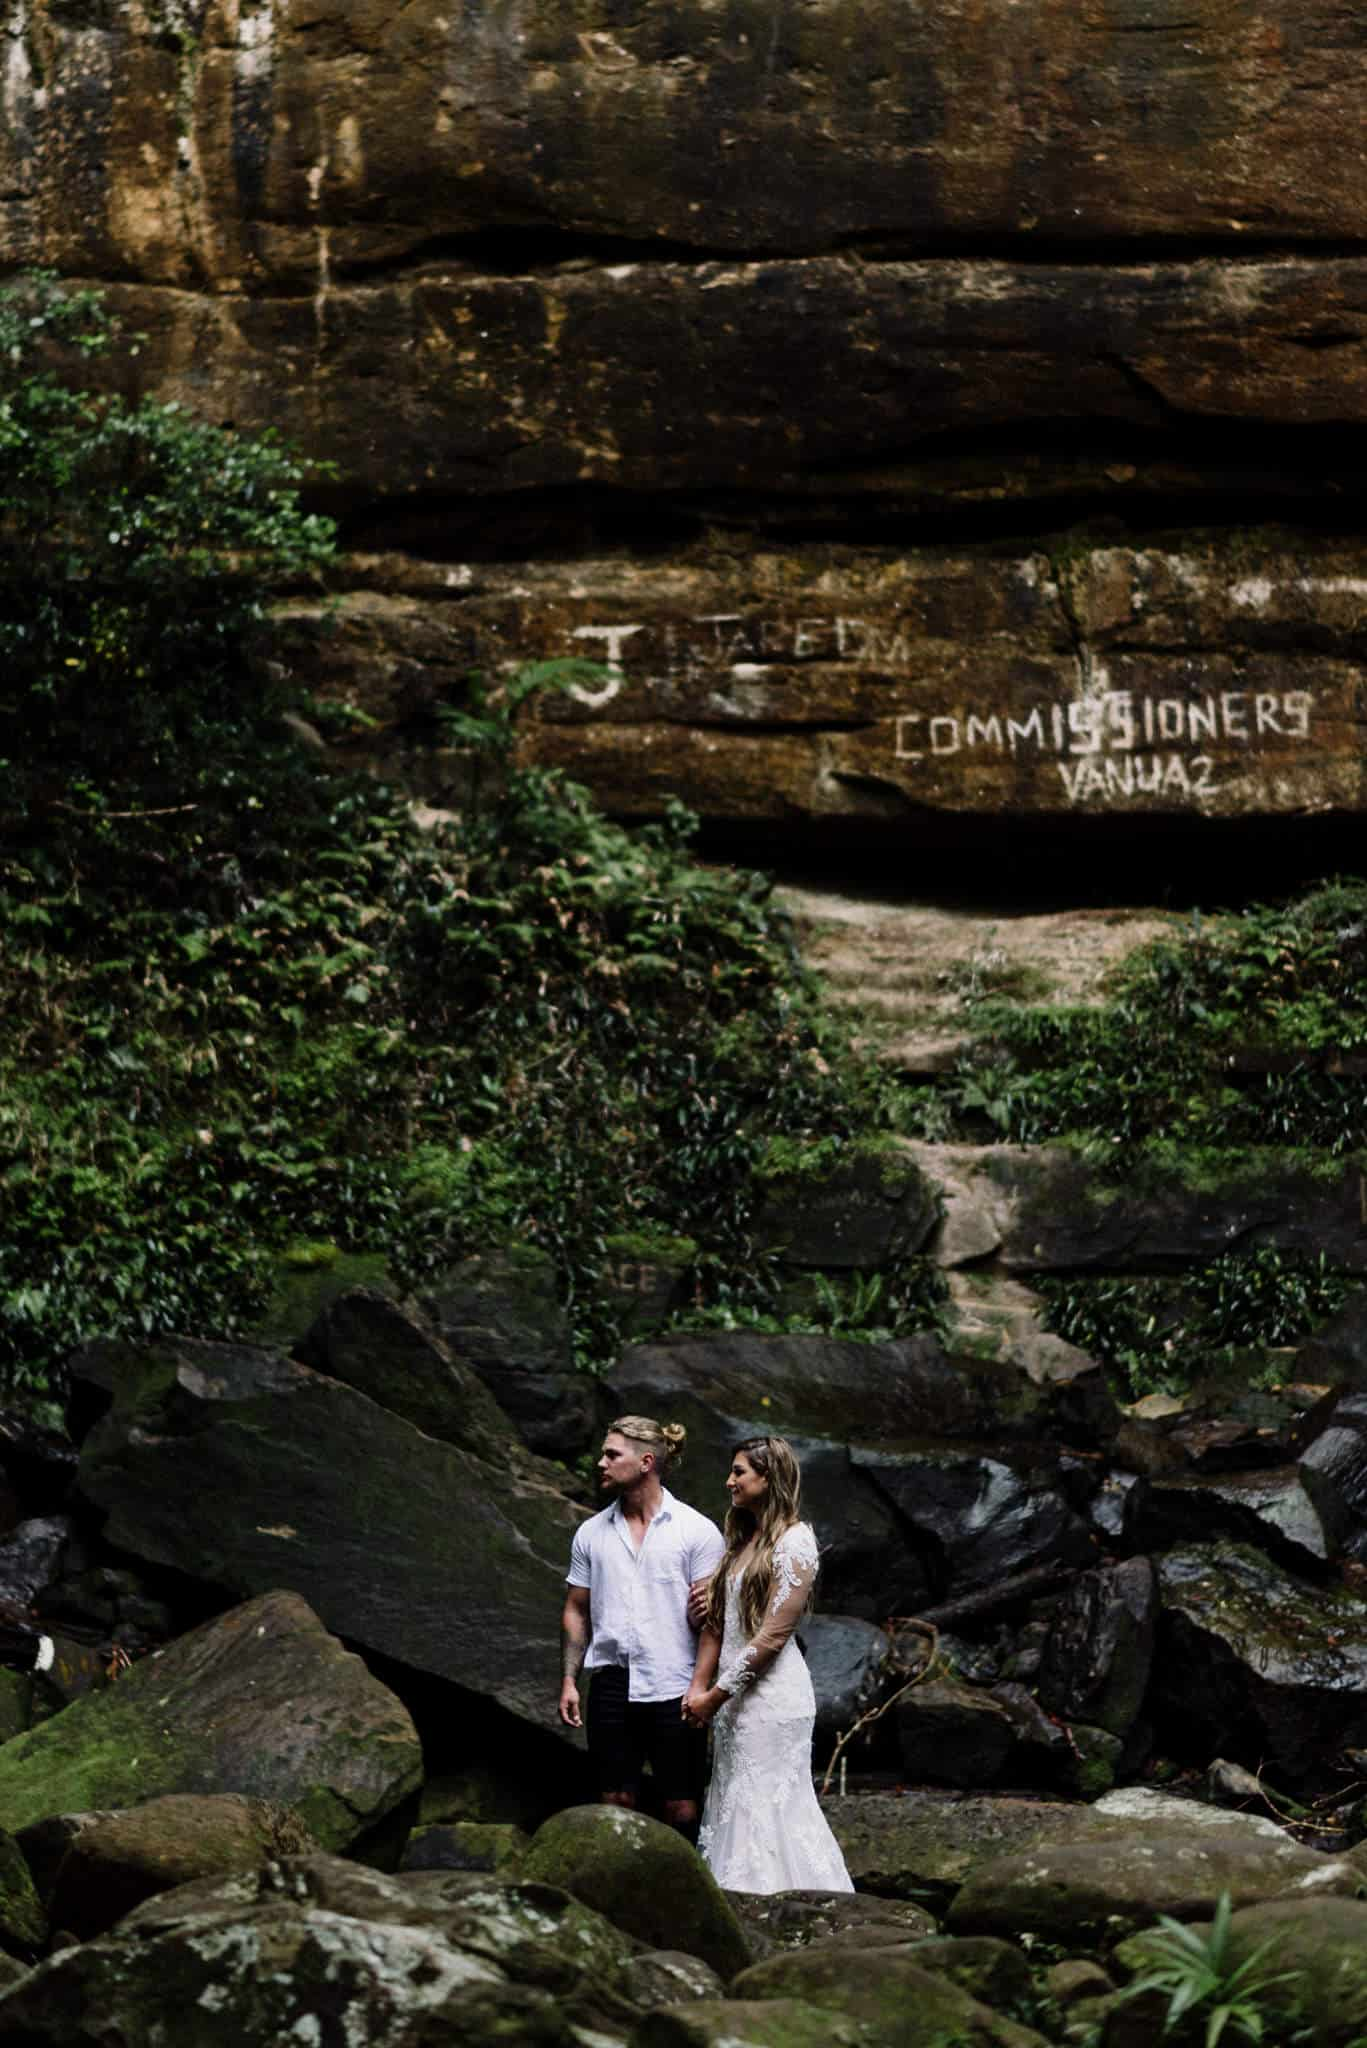 Stunning bride and groom eloping in Pine forest, down by waterfall in Gap Creek near Newcastle